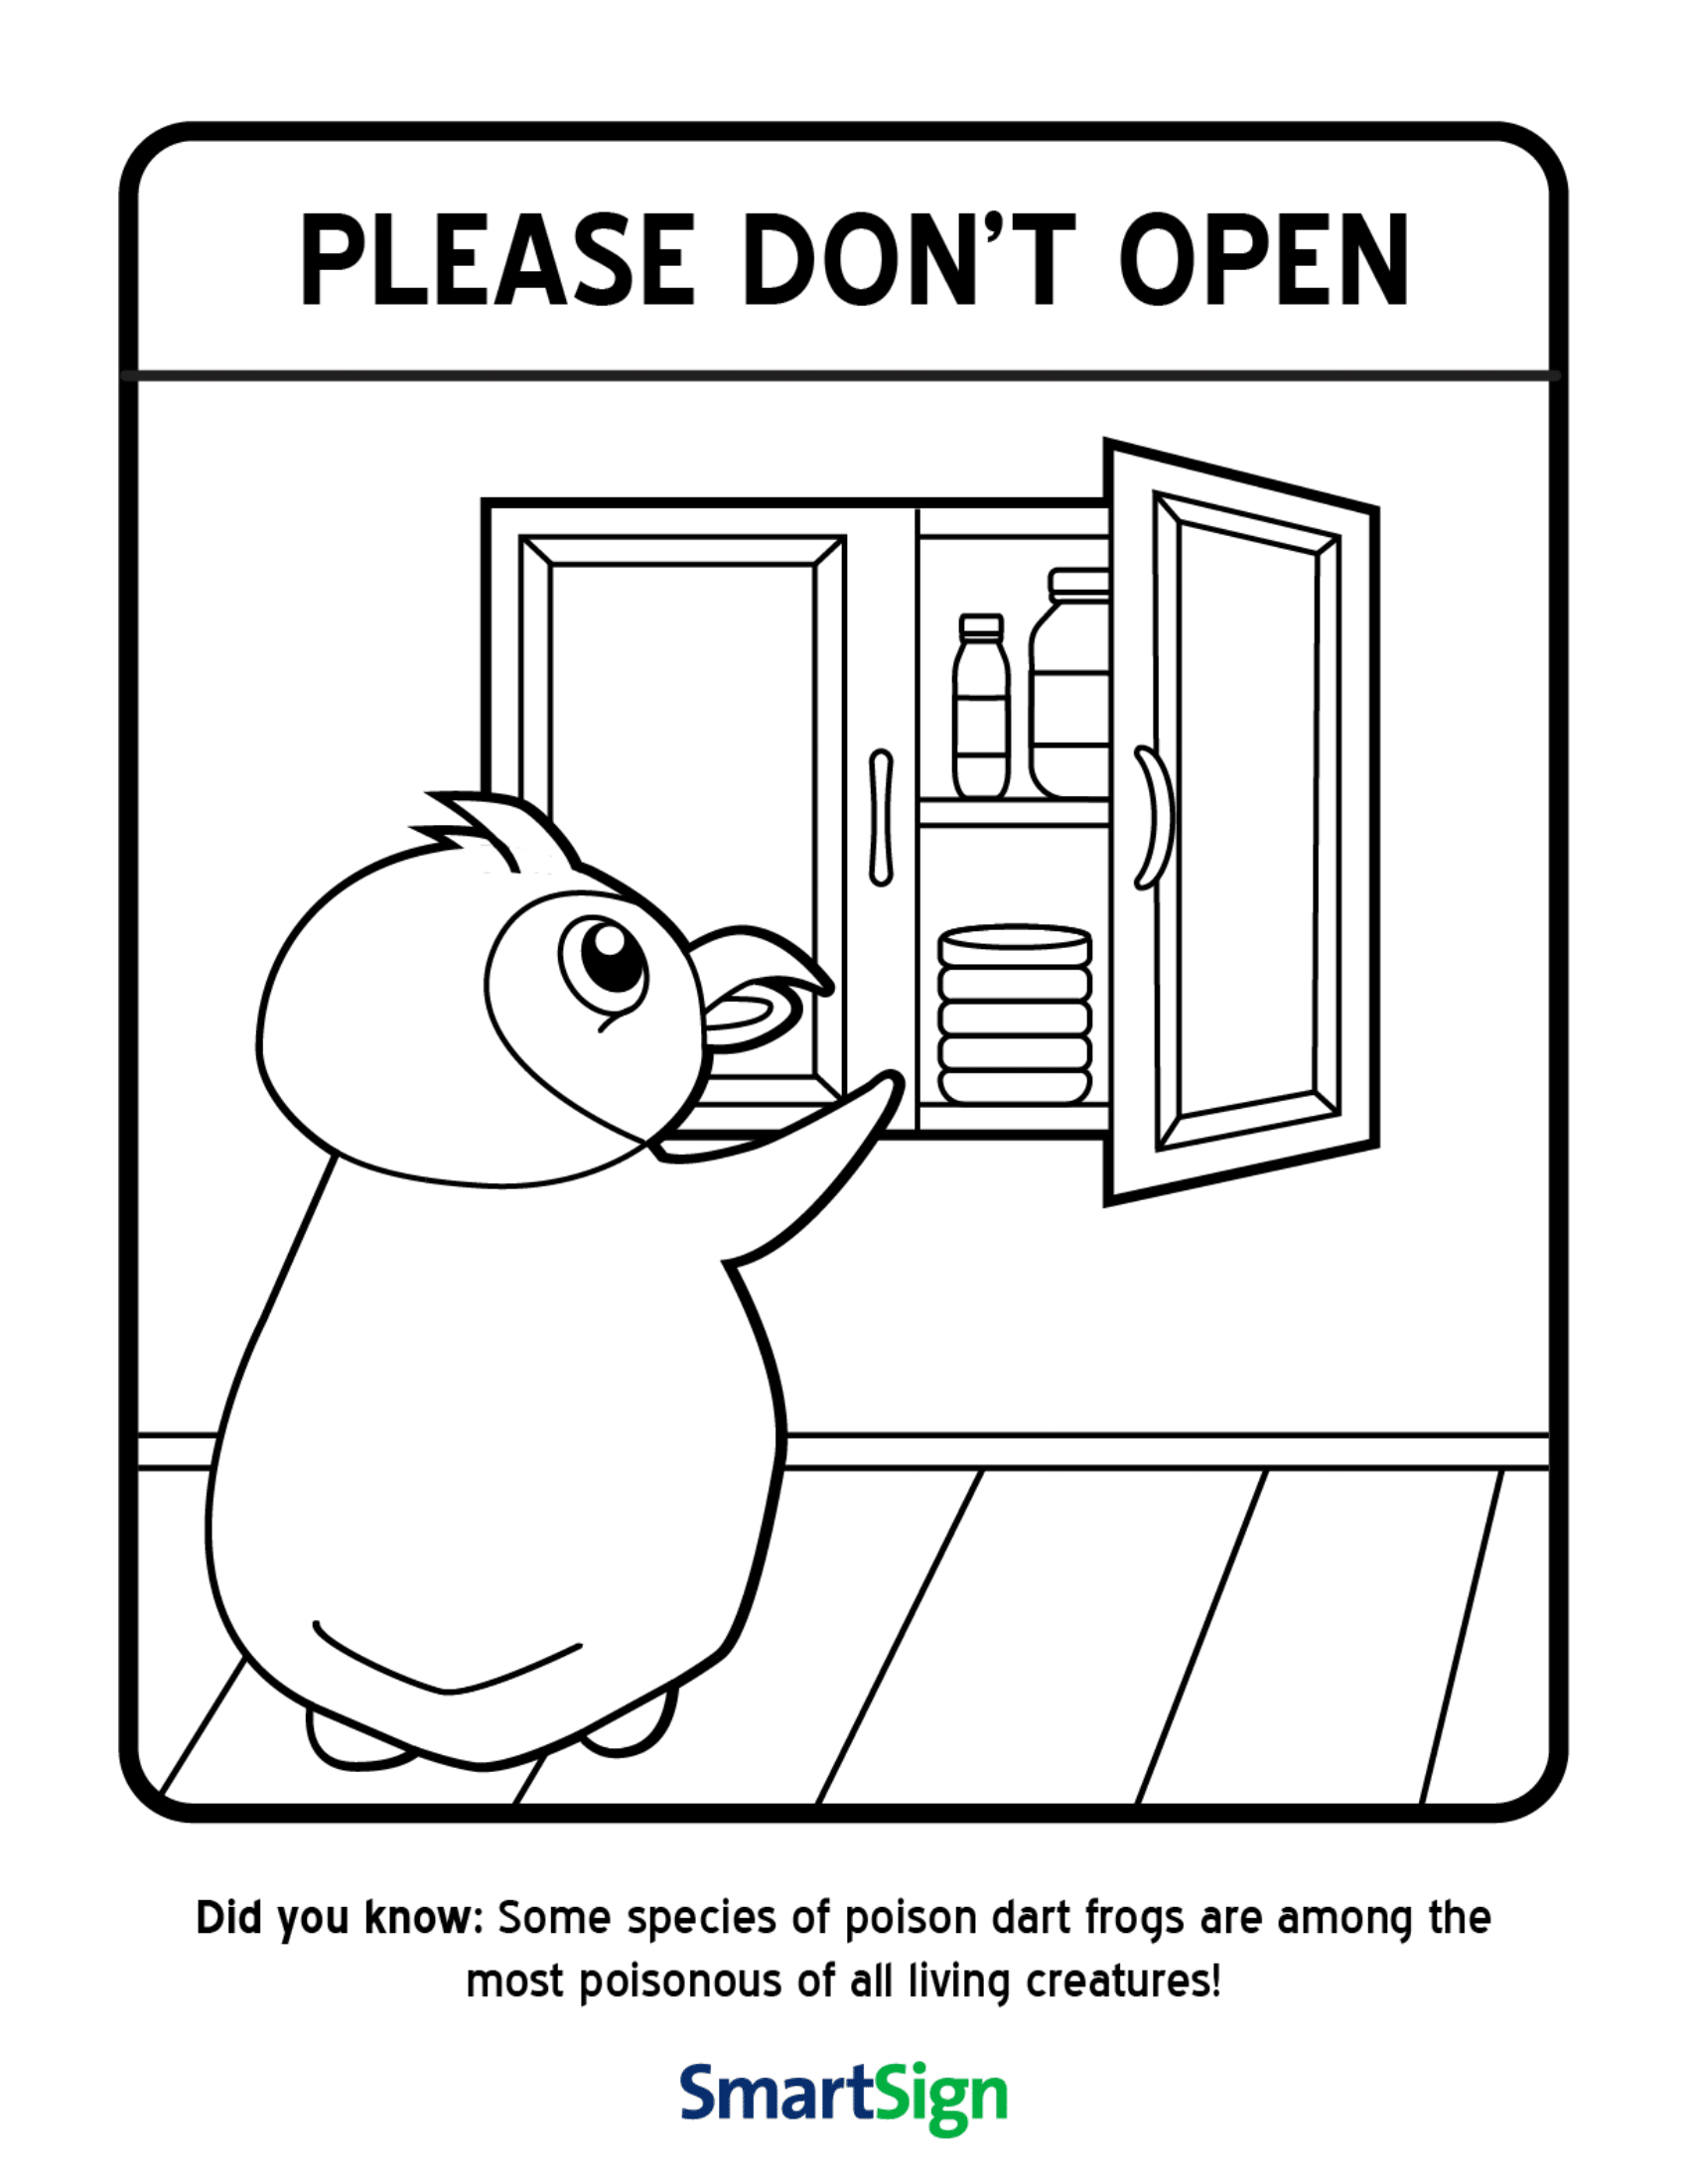 computer safety coloring pages free | Safety Coloring Printable for Kids - Do not open the ...